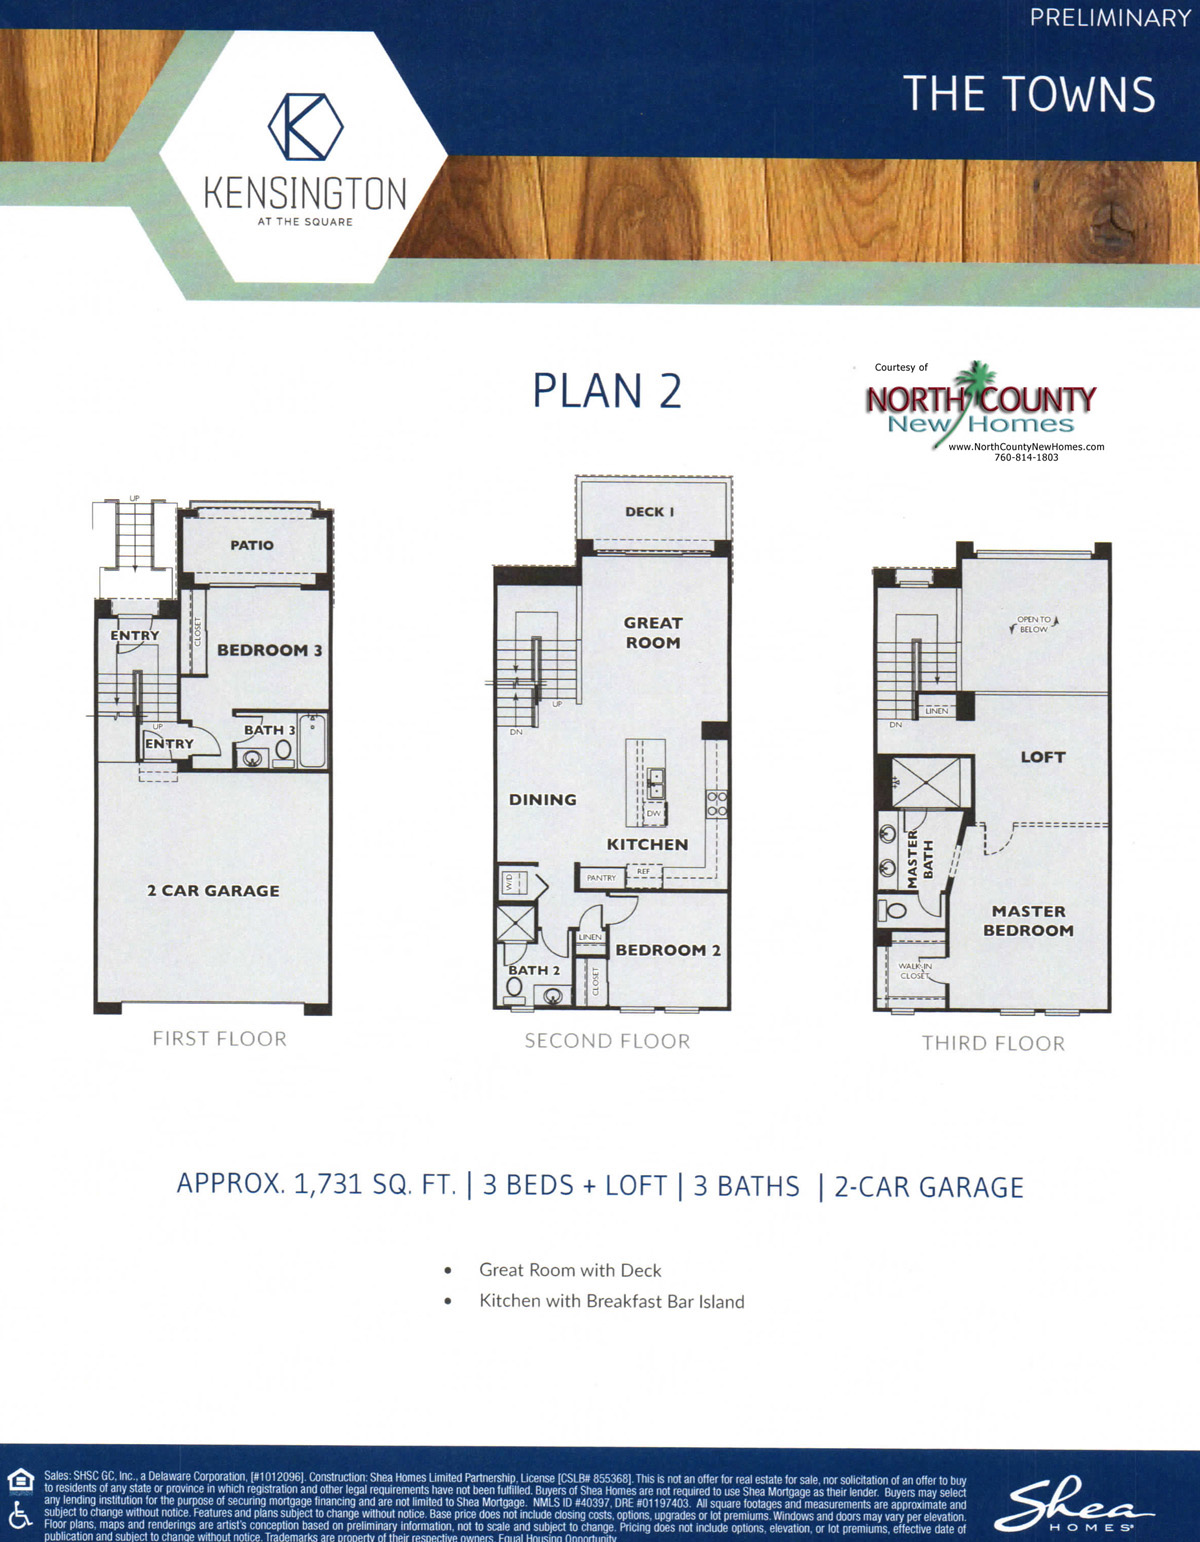 Kensington at The Square floor plans. New townhomes in Carlsbad, California at Bressi Ranch. New construction. 3-story townhomes. Floor Plan 2